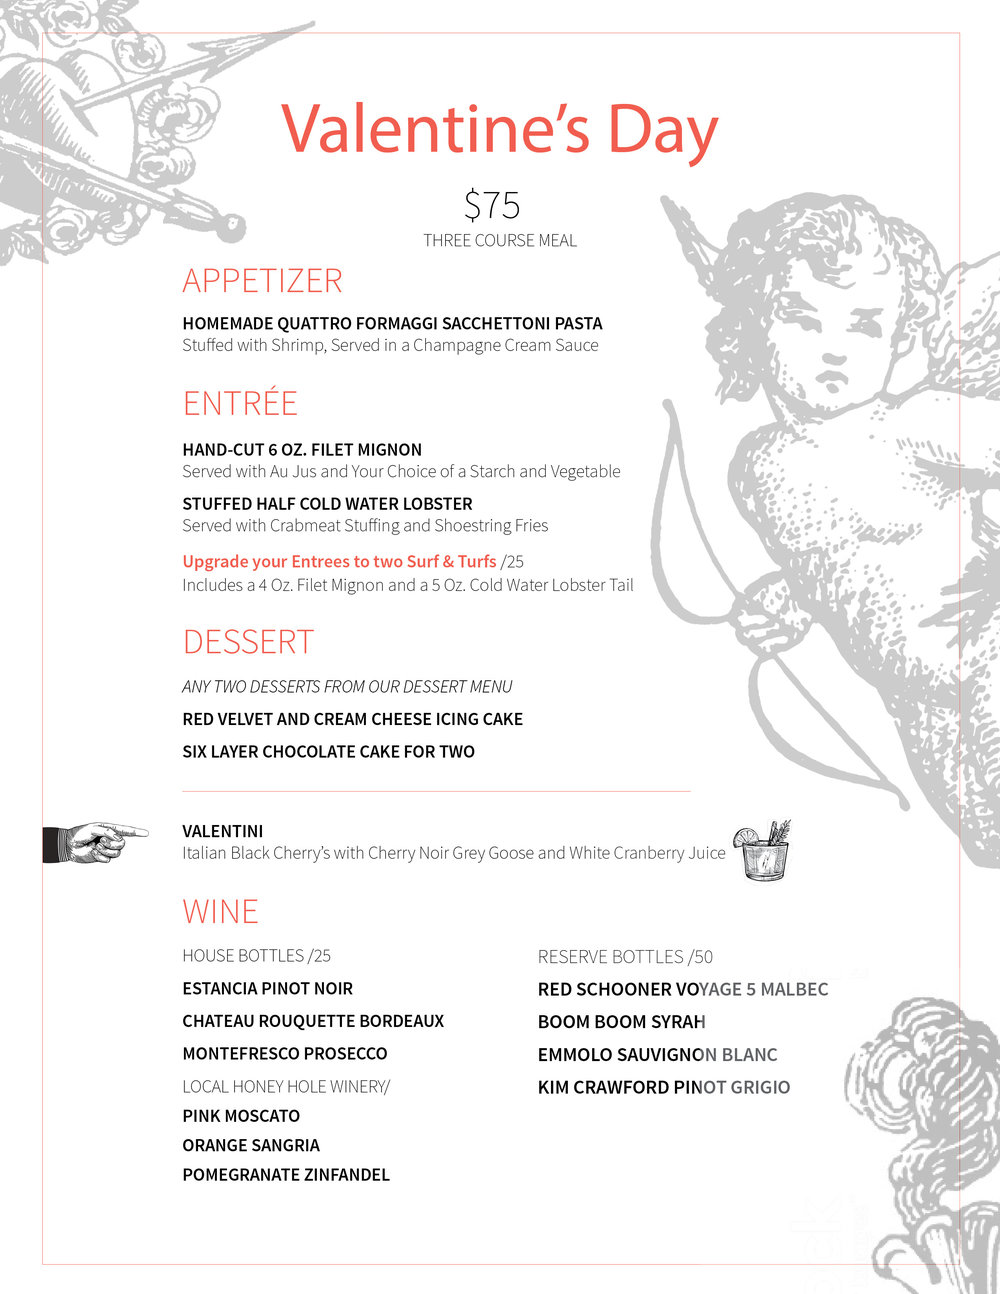 Powerhouse_Valentines_Day_Menu.jpg